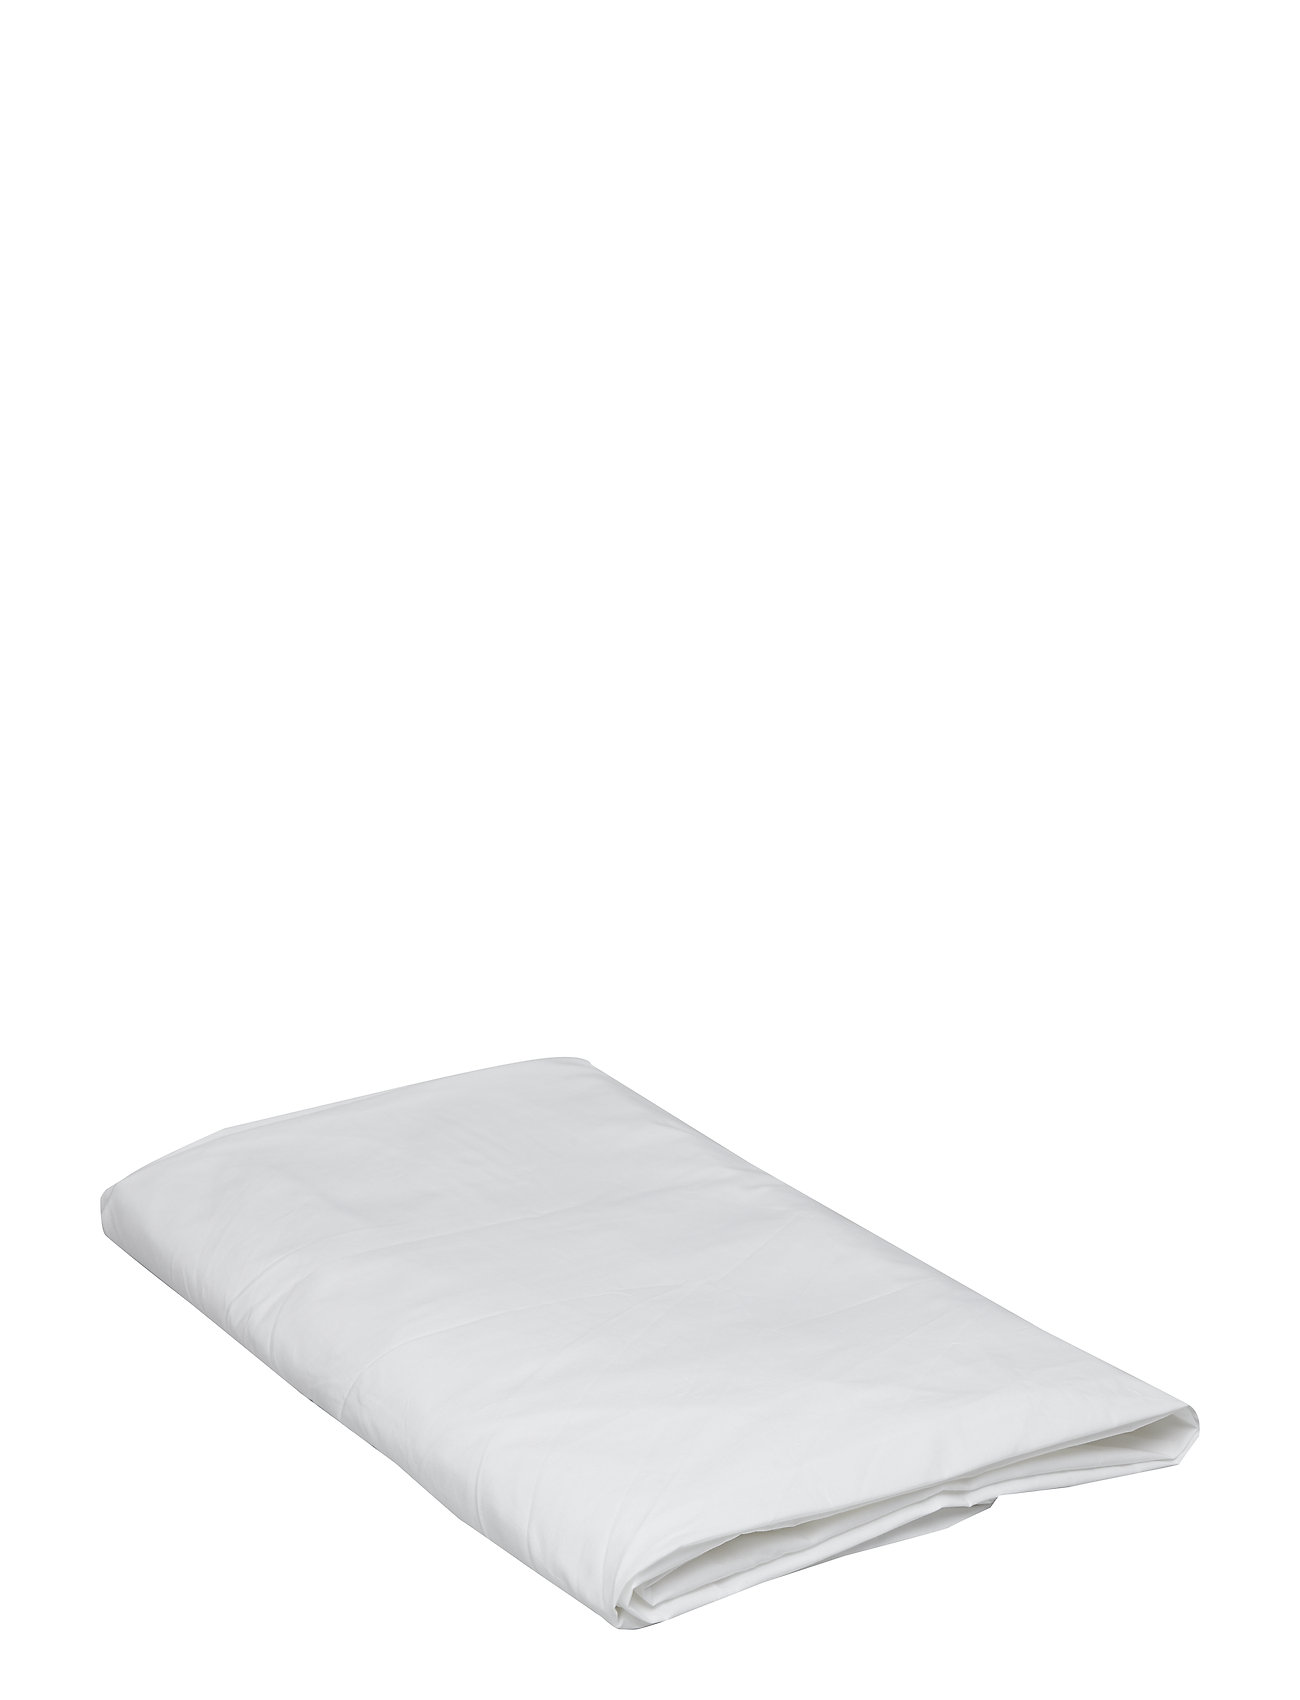 Gripsholm ENVELOPE SHEET ECO PERCALE - WHITE